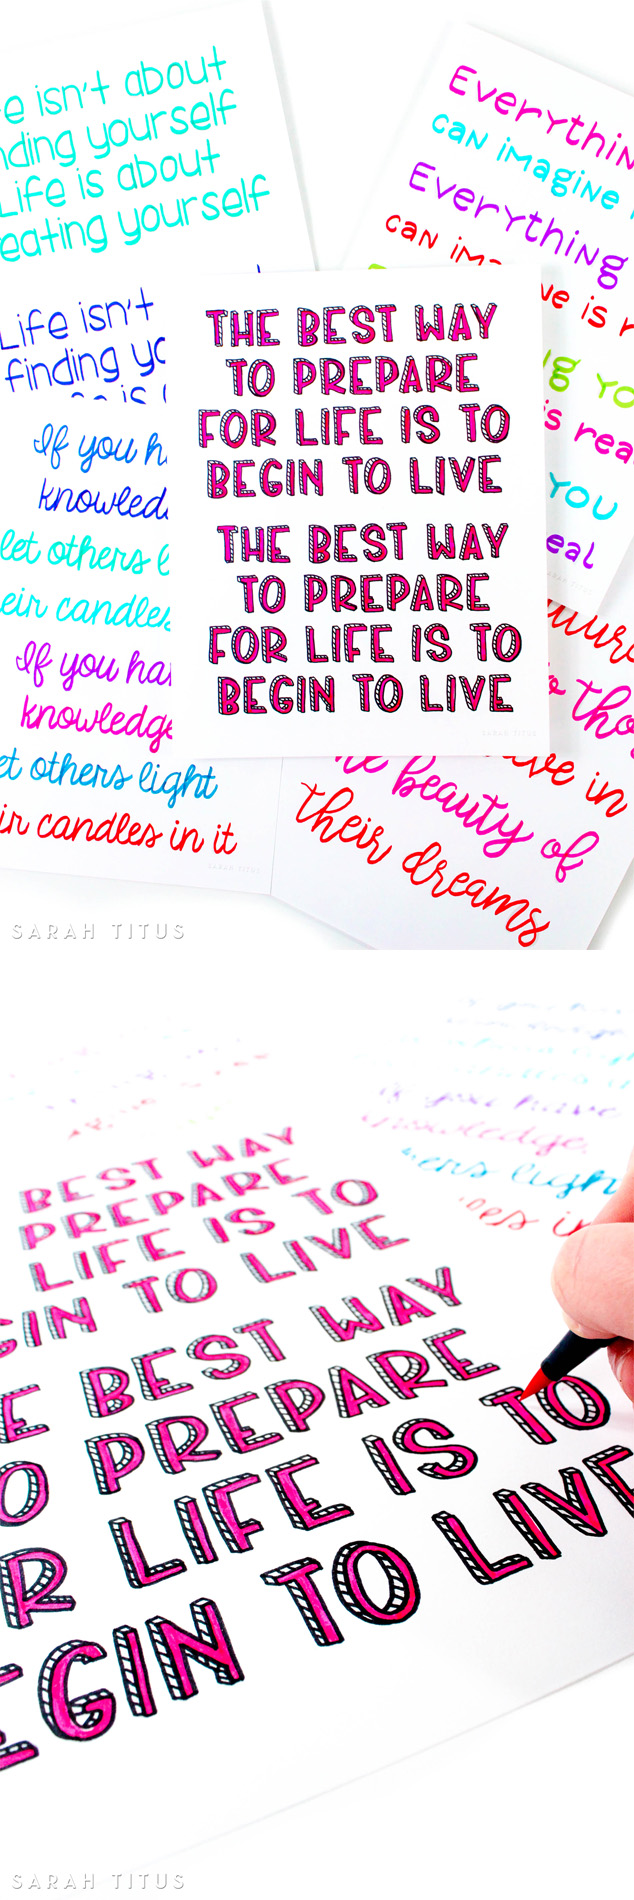 I quickly fell in love with hand lettering and knew I needed to practice to get my skills better. This free 30 days to better hand lettering series is your golden ticket to do the same!